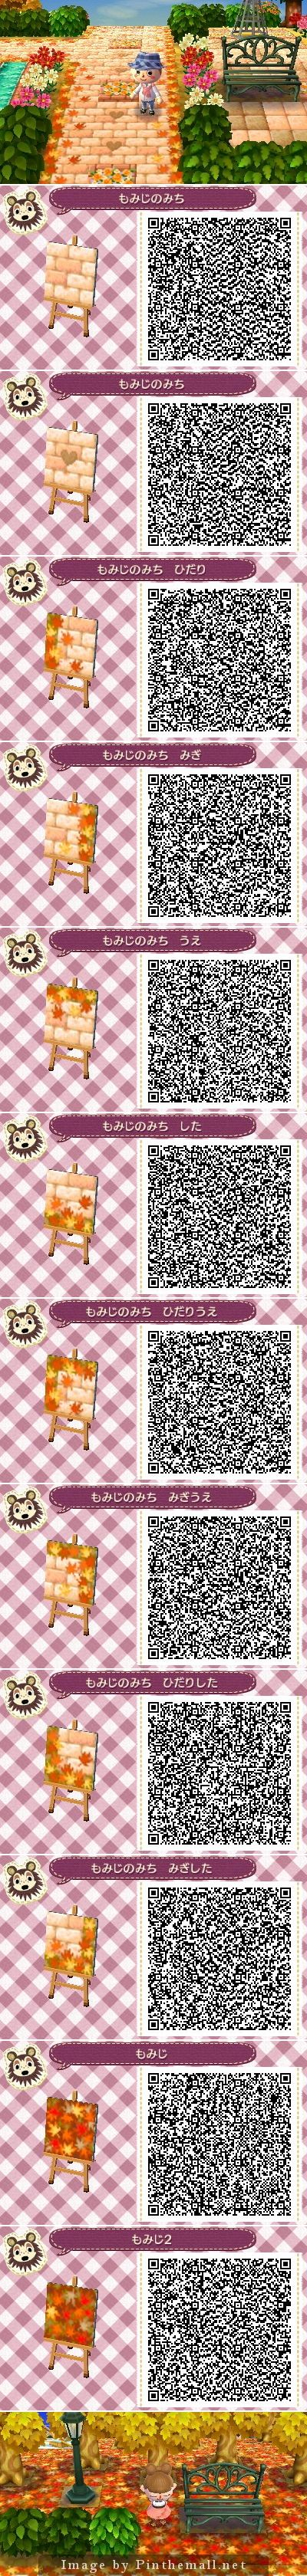 Autumn Leaves Pathway QR codes